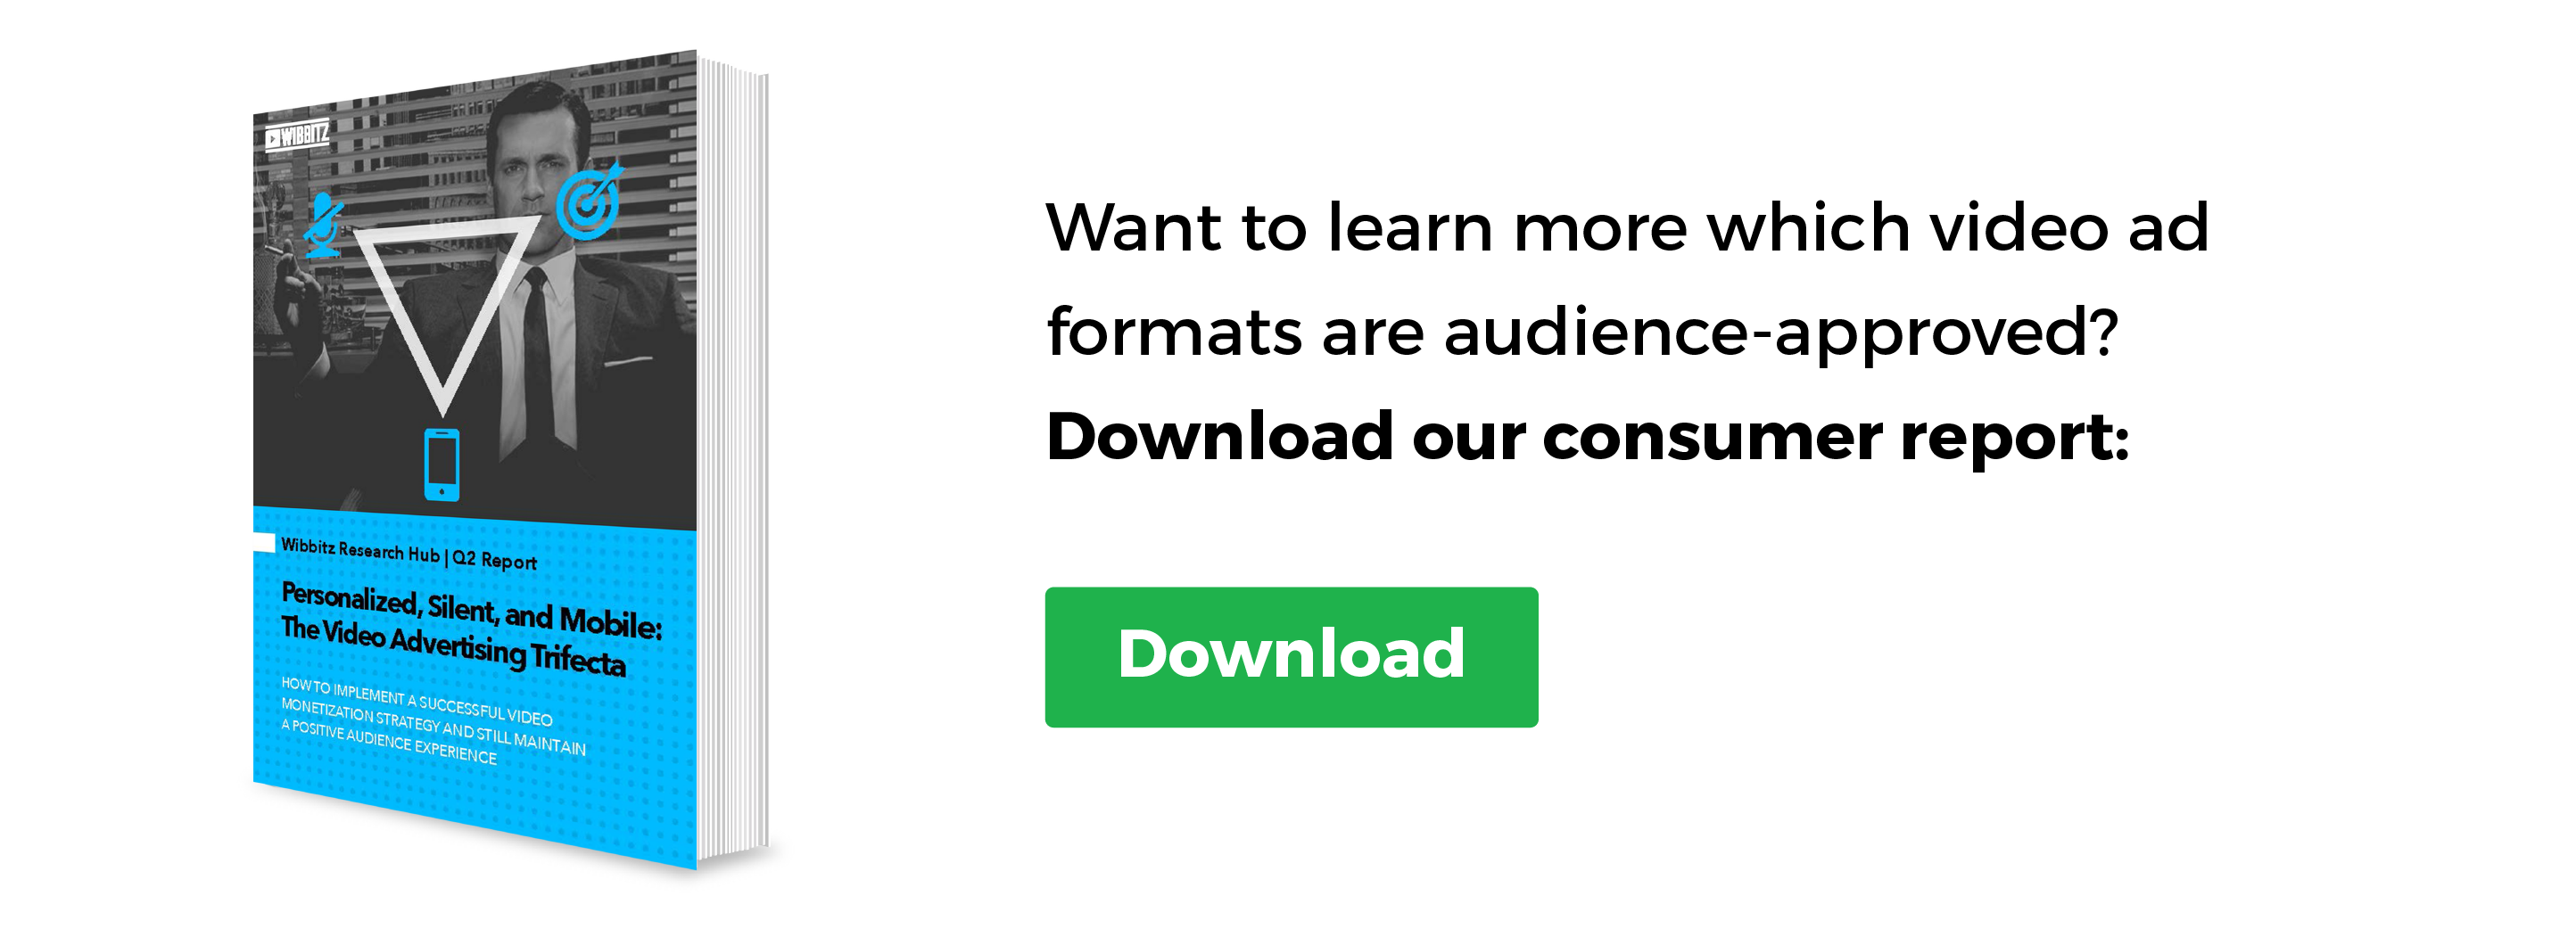 Want to learn which video ad formats are audience-approved? Download our full report!